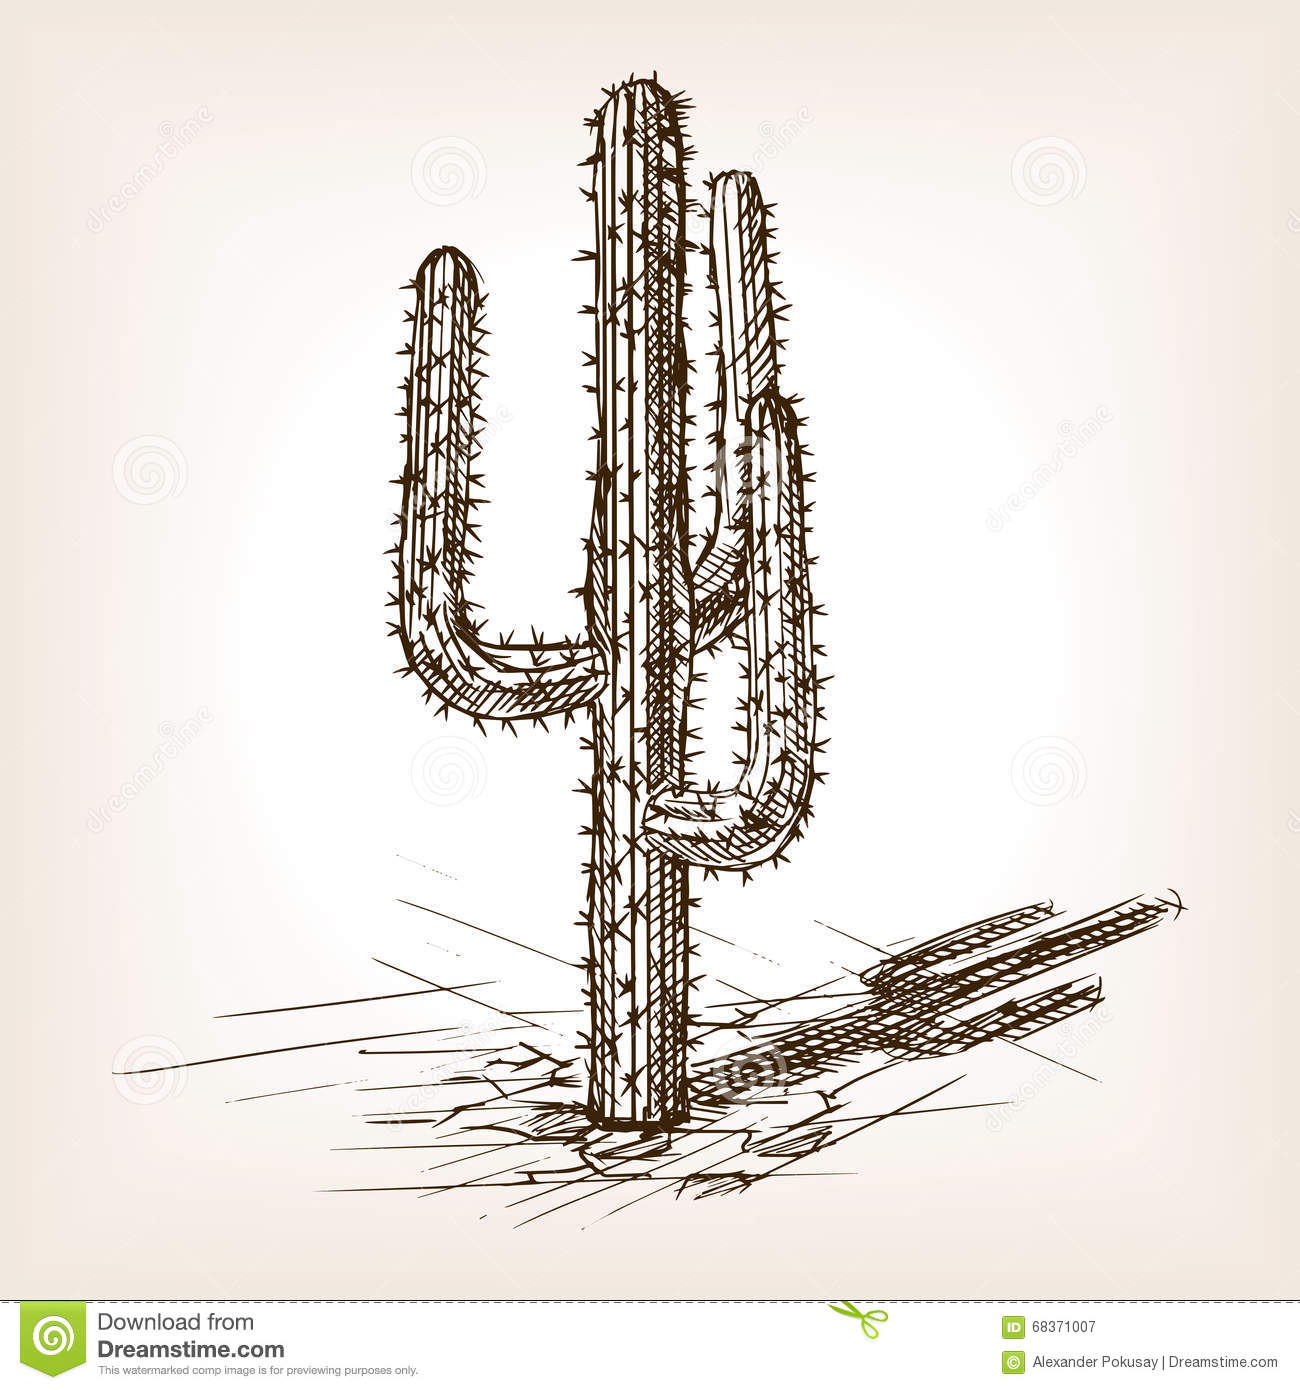 Cactus Hand Drawn Sketch Style Vector Stock Vector - Illustration Of Eating Plant 68371007